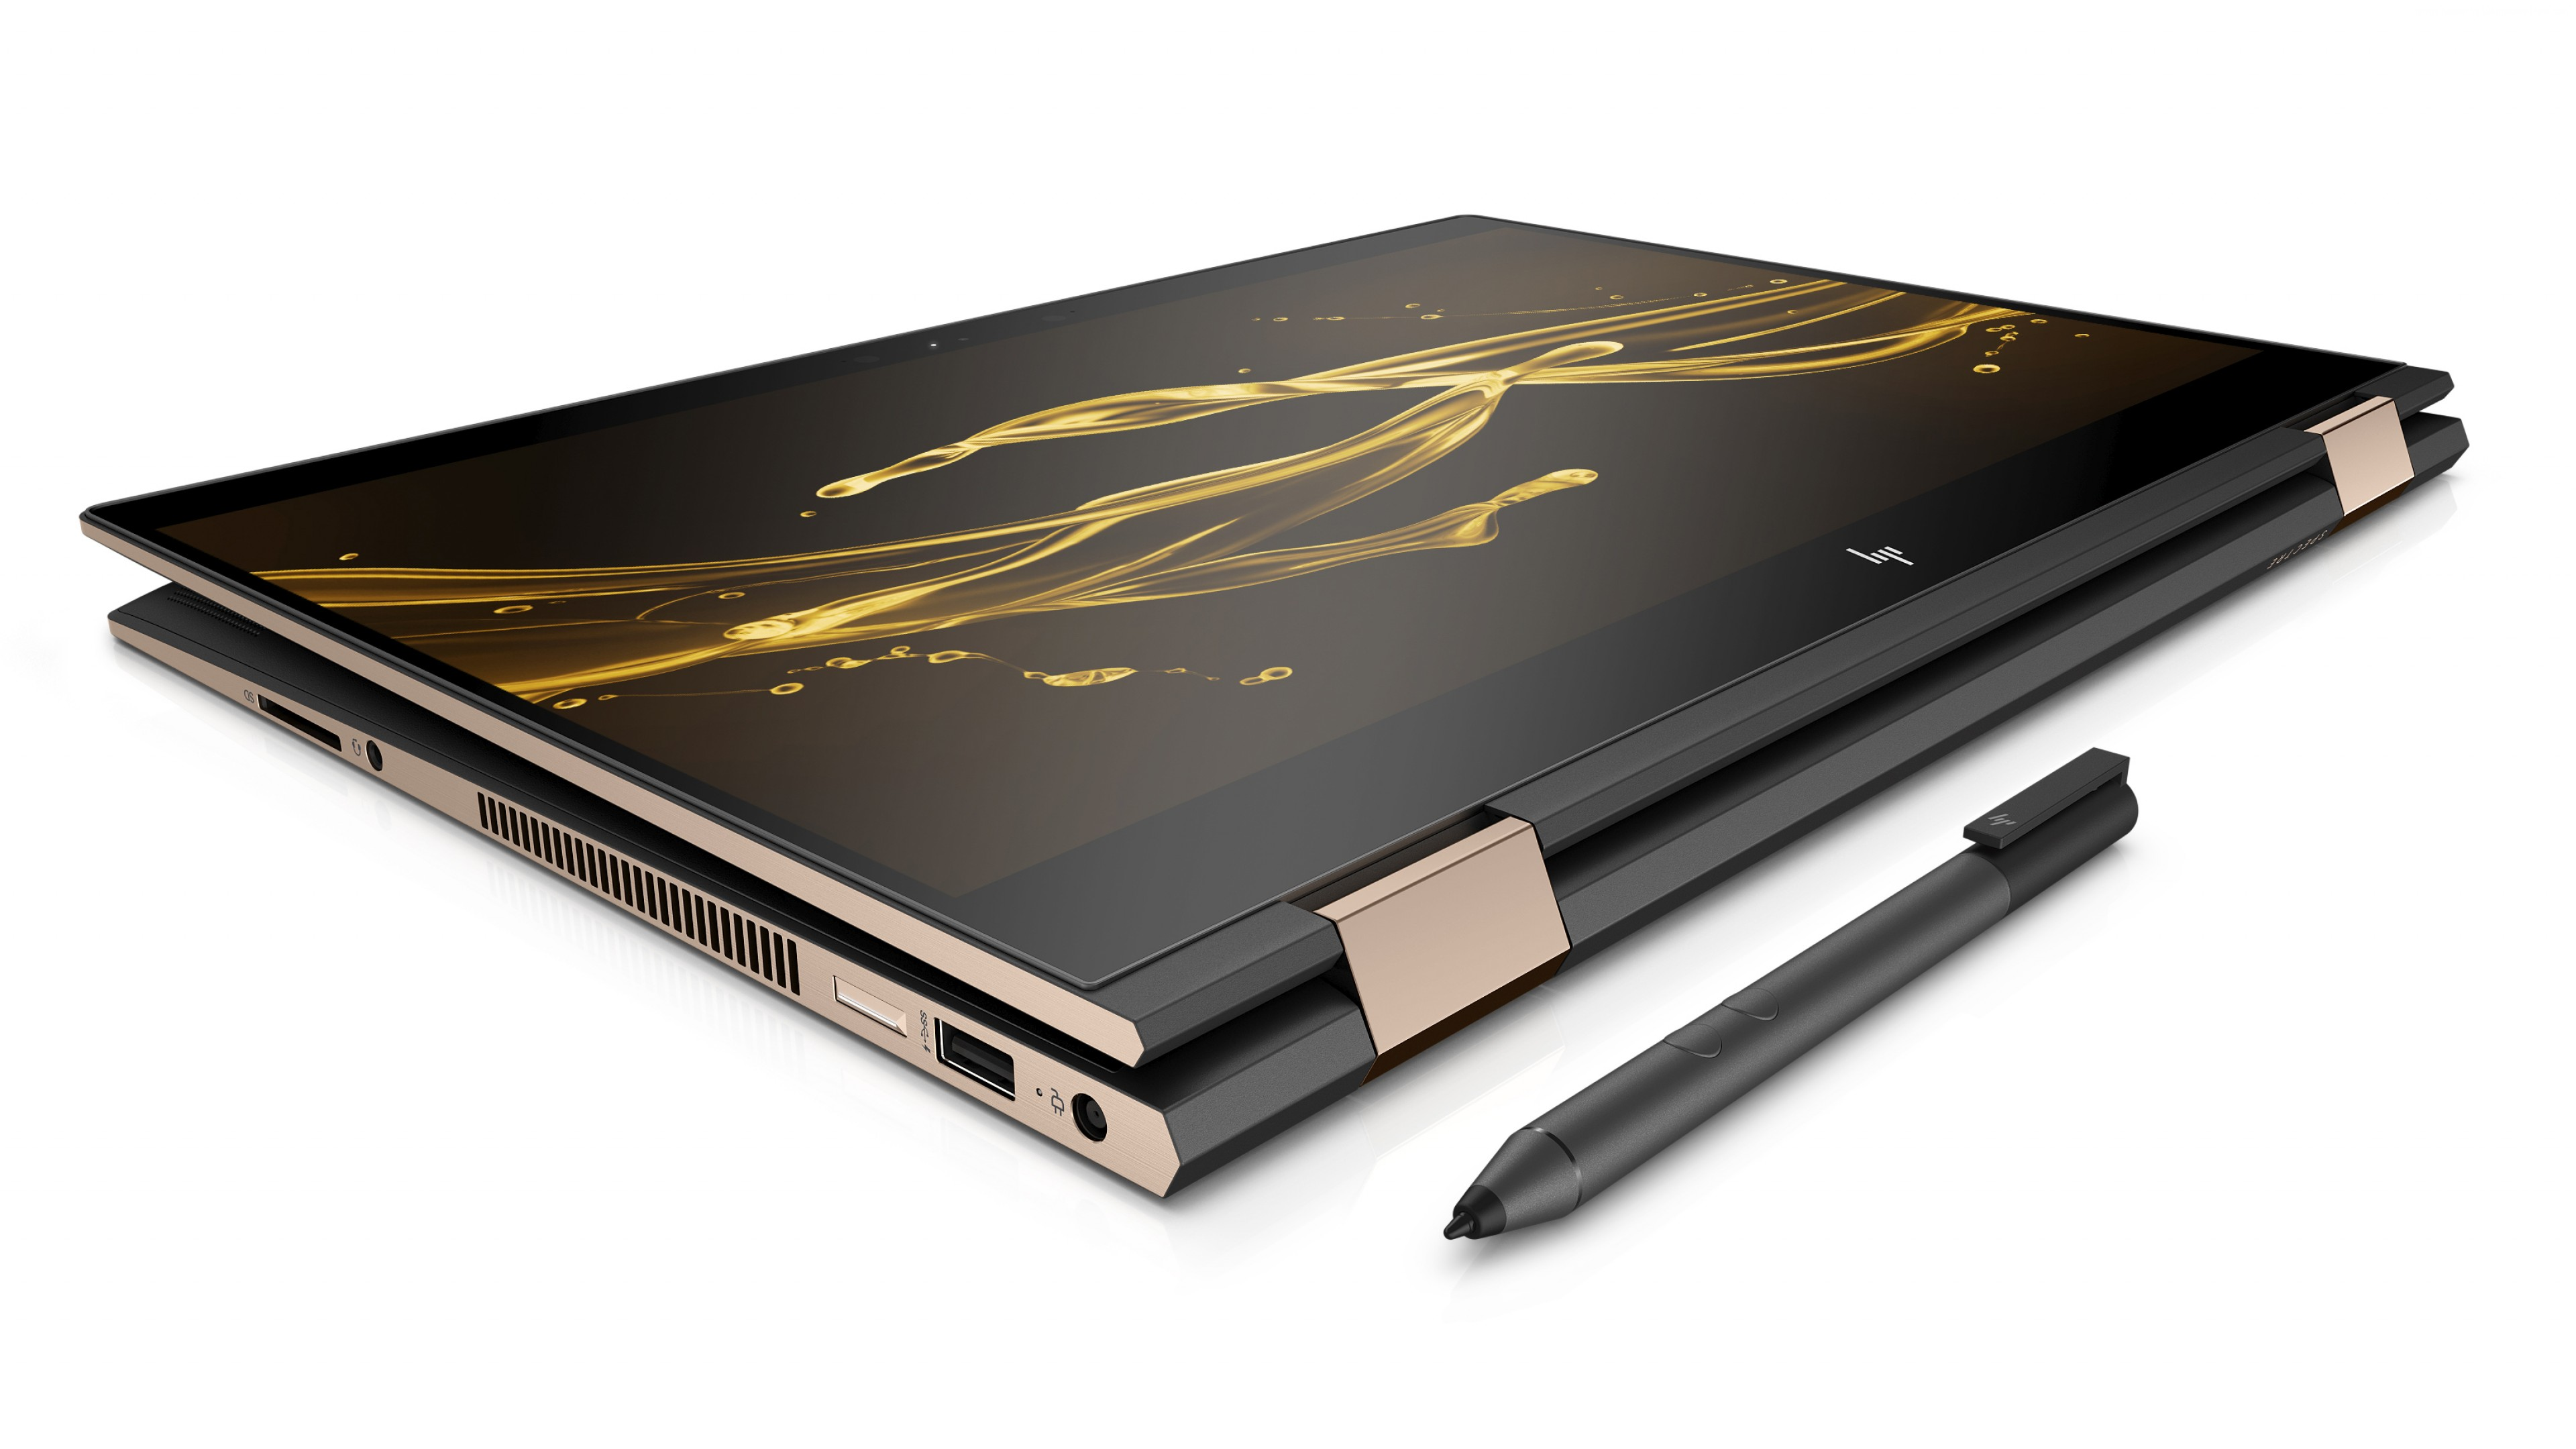 Wallpaper HP Spectre x360 15, CES 2018, 4k, Hi-Tech